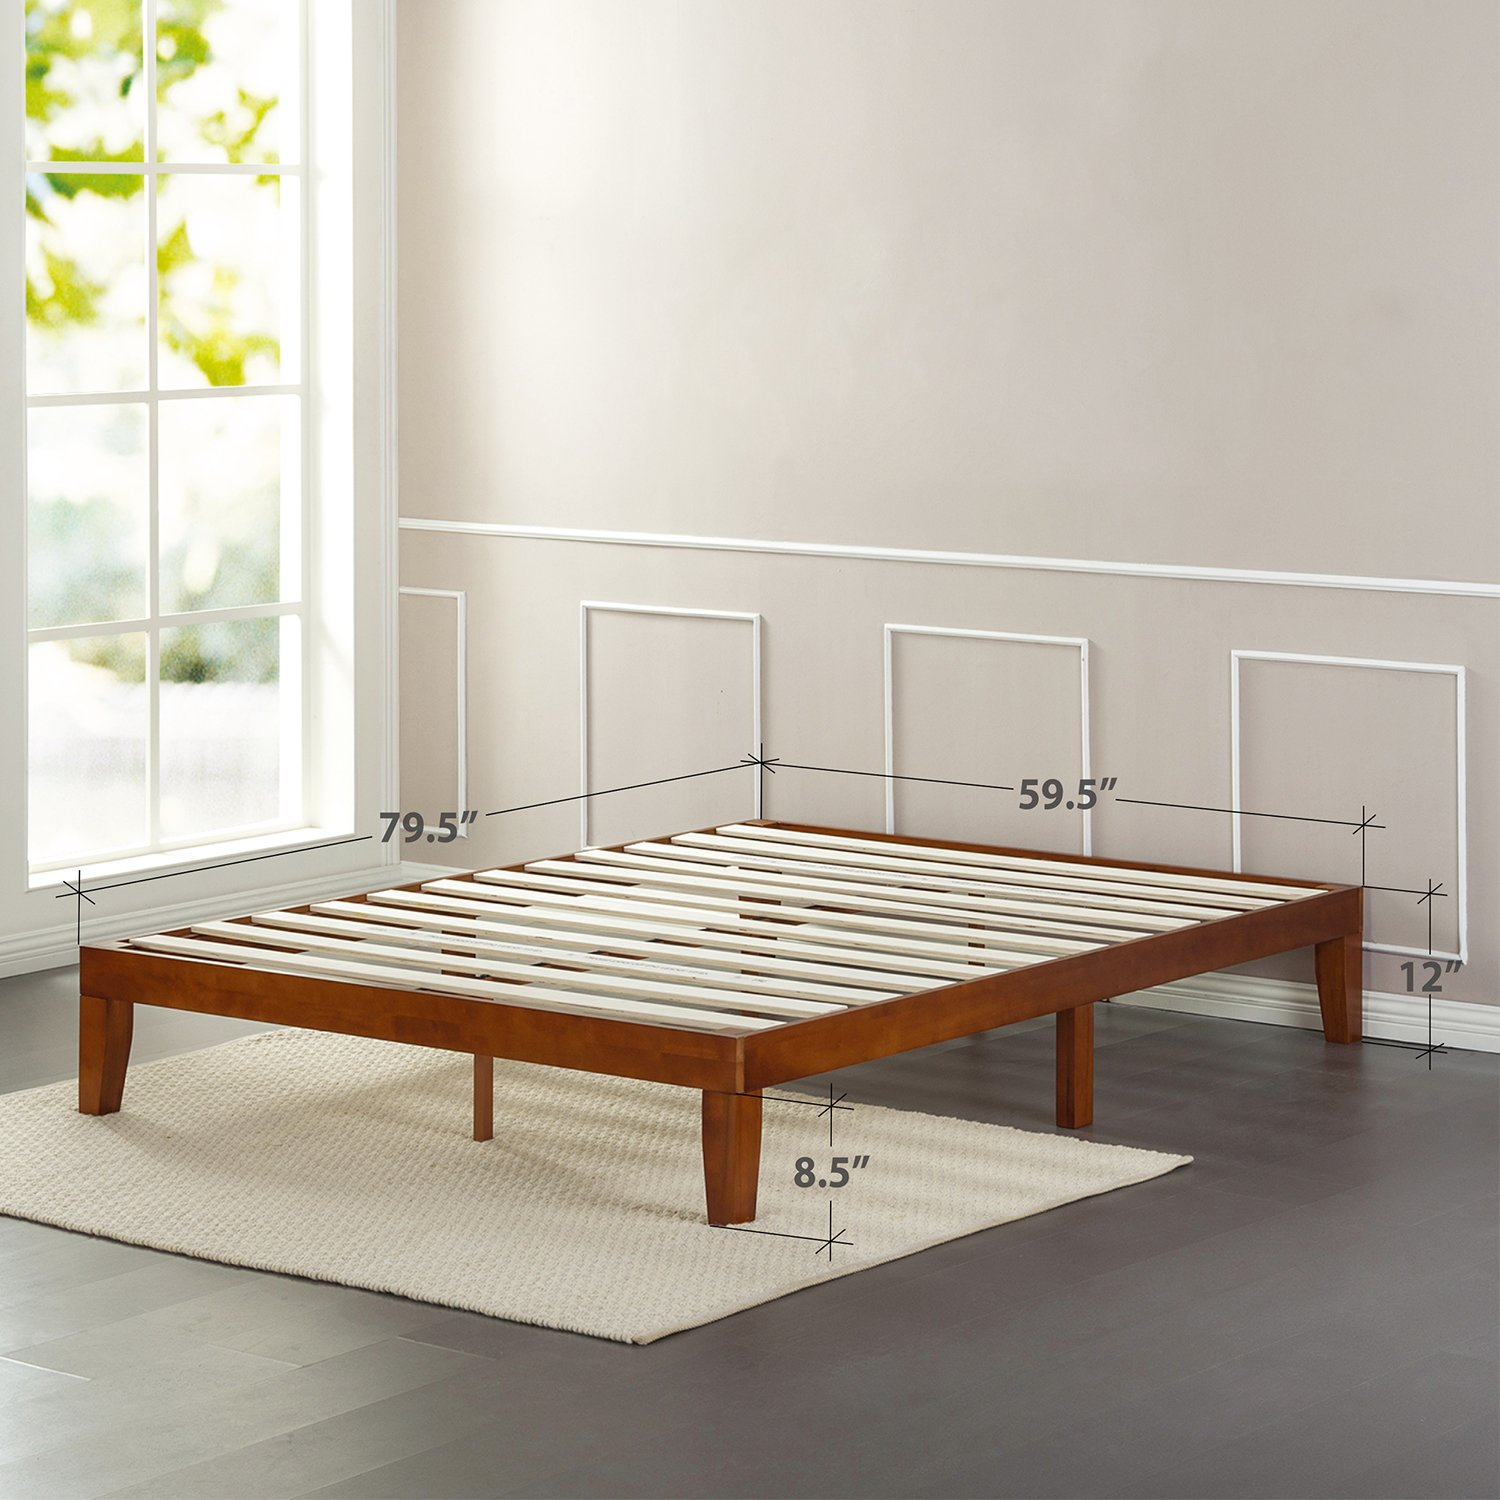 Zinus 12 Inch Wood Platform Bed / No Boxspring Needed / Wood Slat support / Cherry Finish, Queen by Zinus (Image #3)